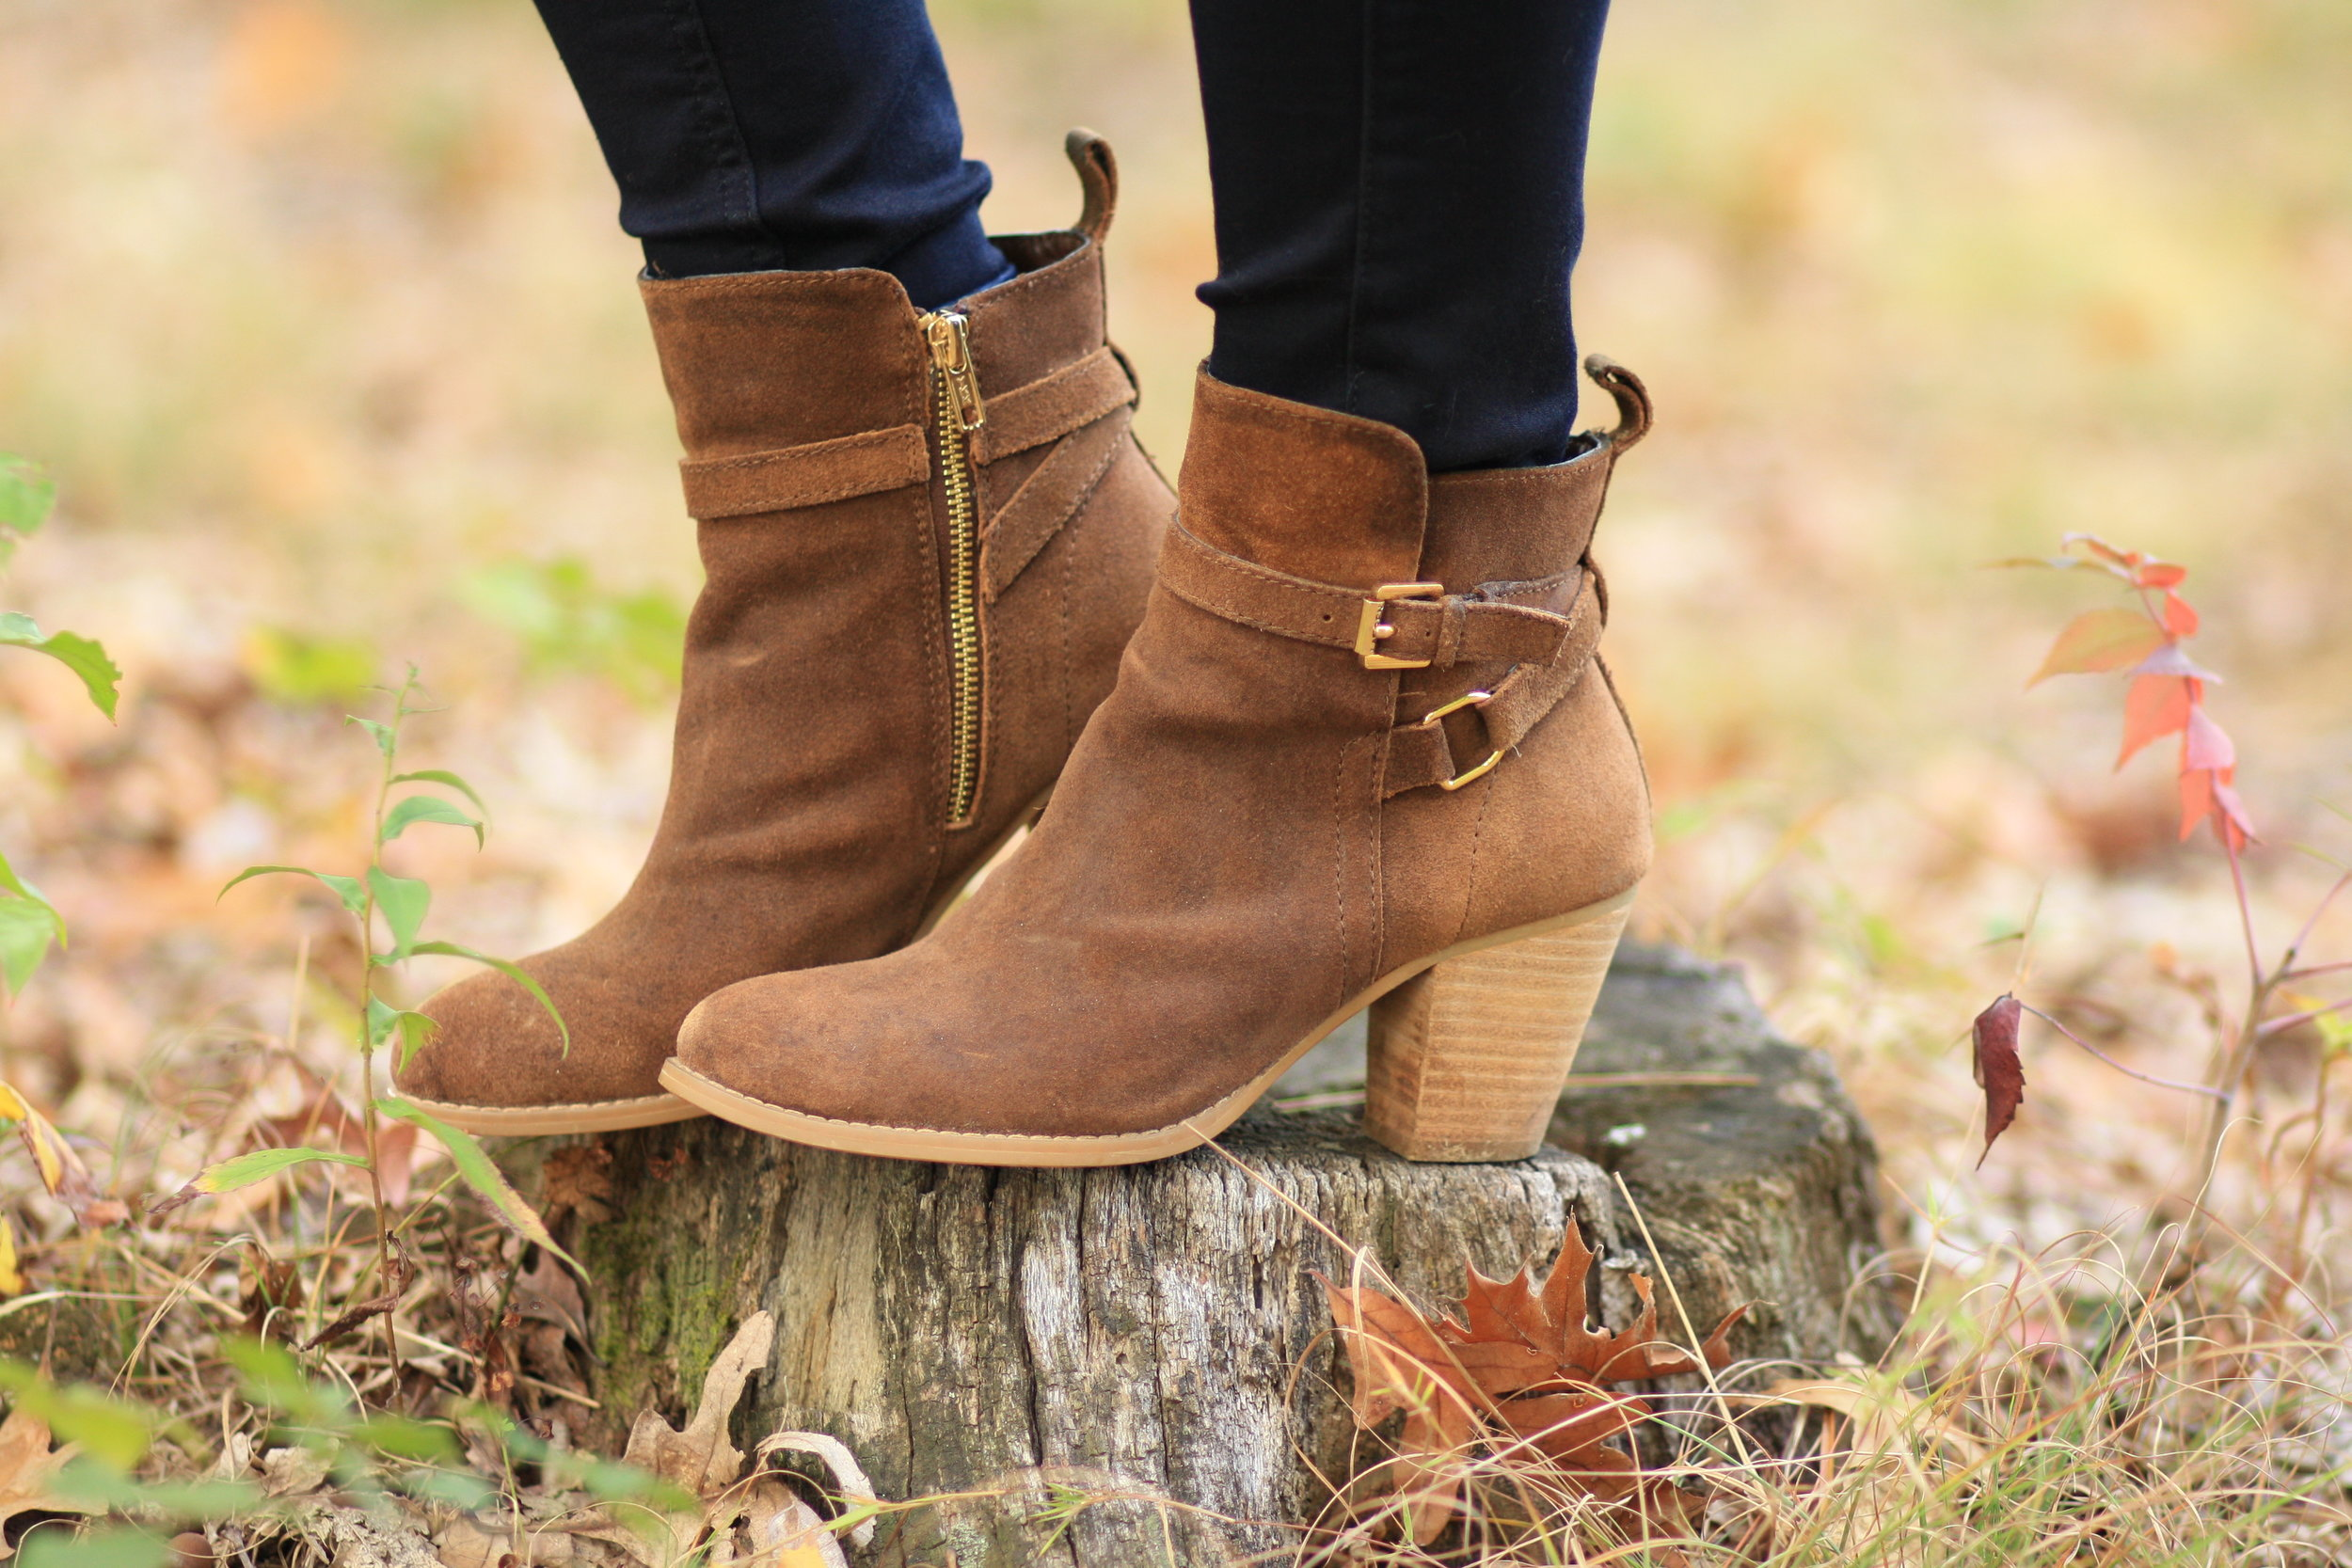 Ralph-Lauren-brown-suede-ankle-boots-fall-leaves-fall-boots-boots-in-the-woods-fall-photography.jpg